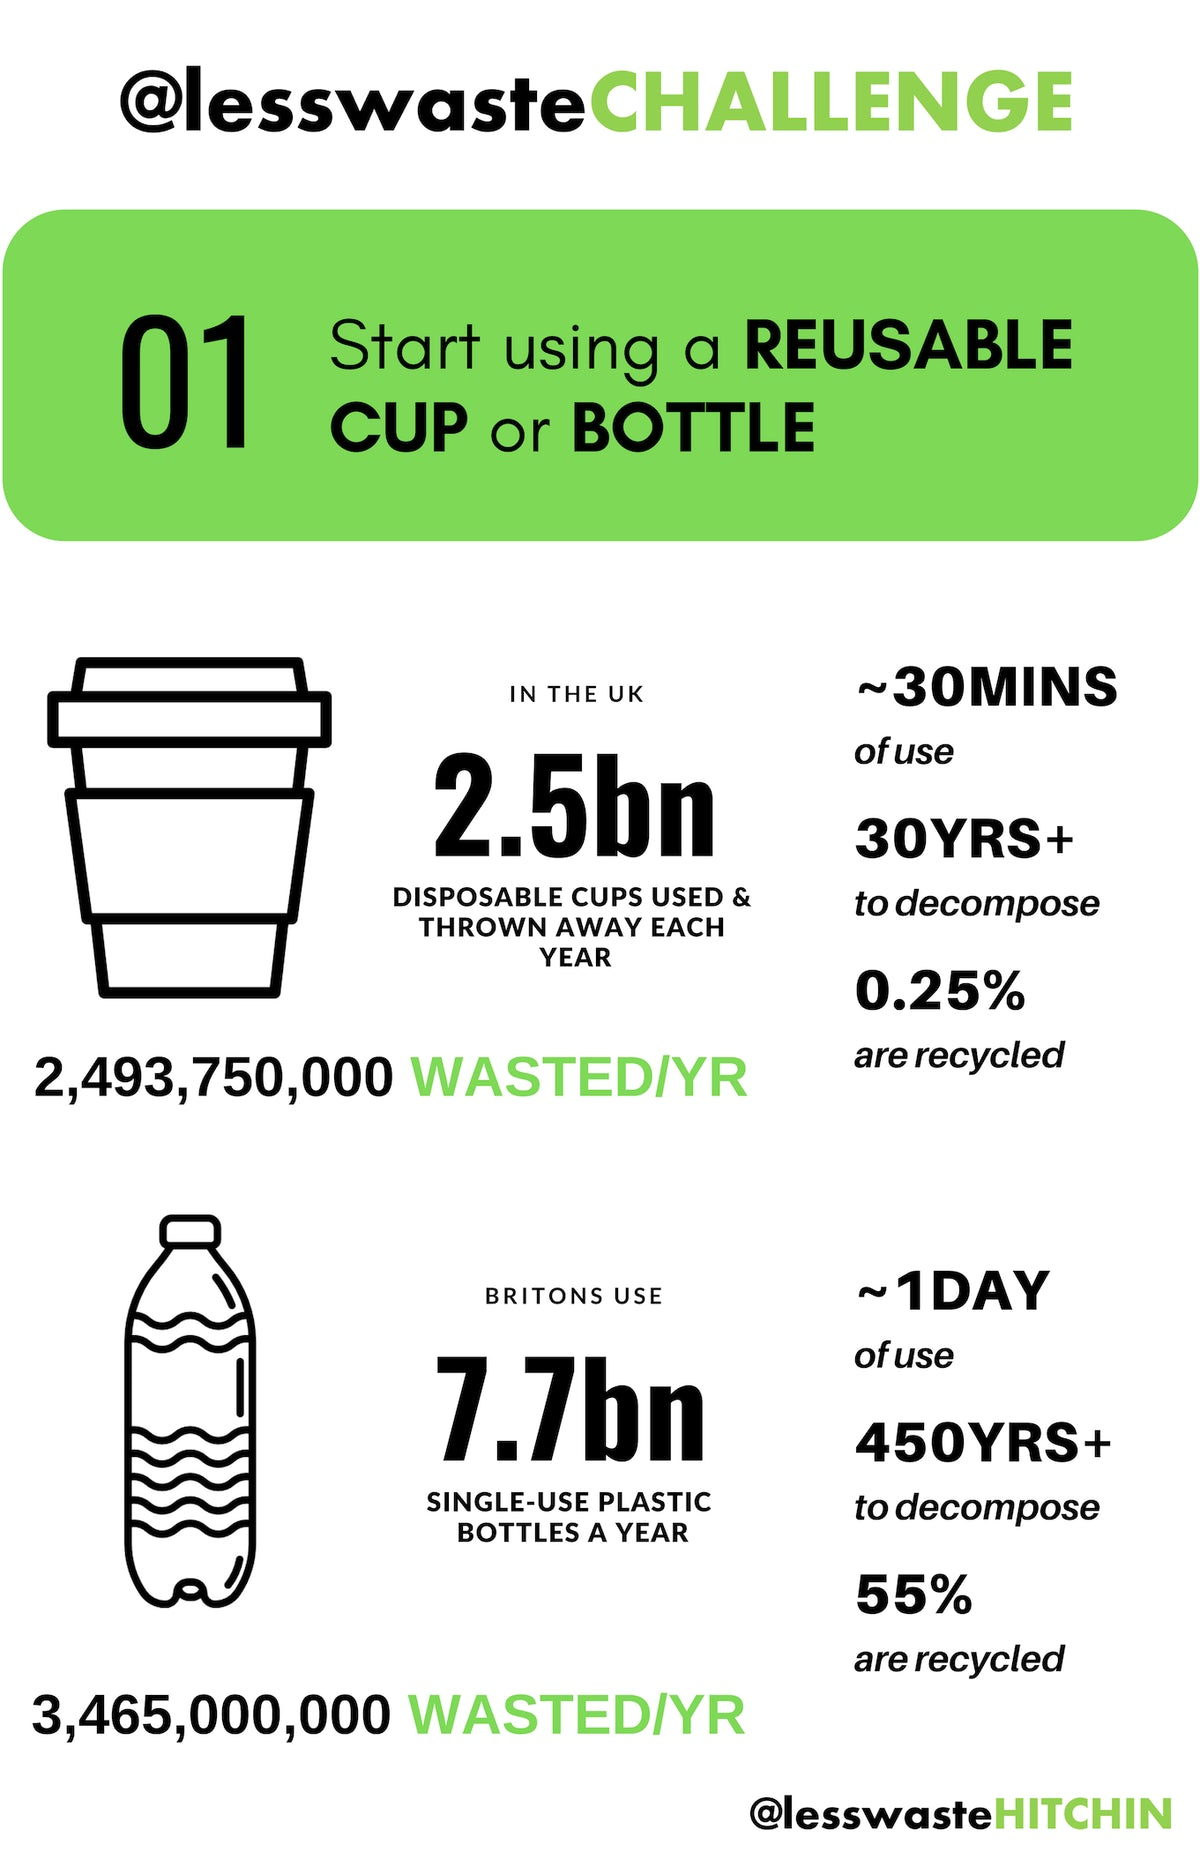 Start using a REUSABLE CUP or BOTTLE